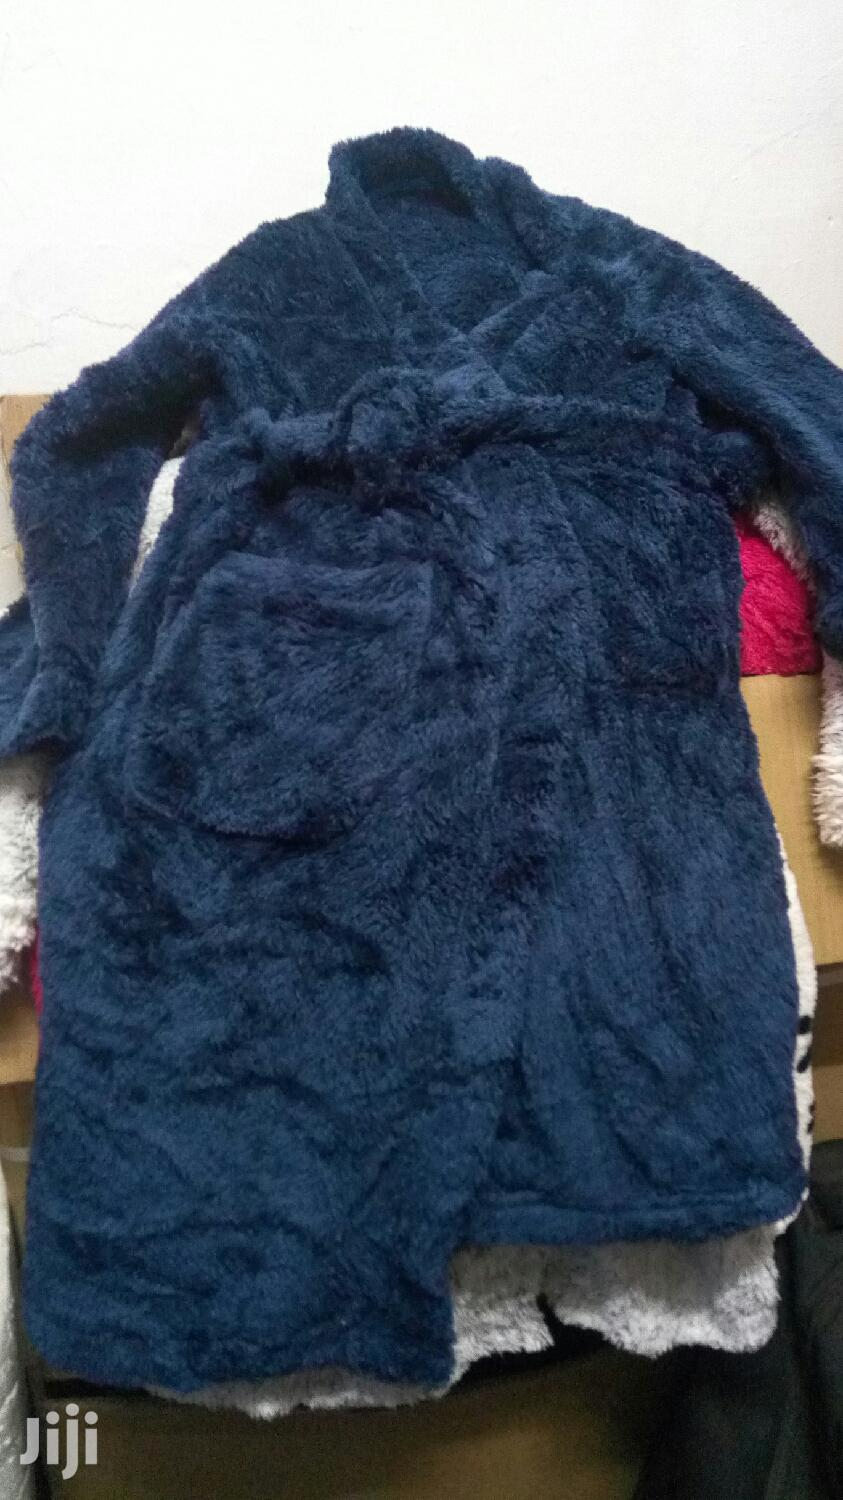 Bathing Gown/Robe/ Towel With Hood | Children's Clothing for sale in Nairobi Central, Nairobi, Kenya